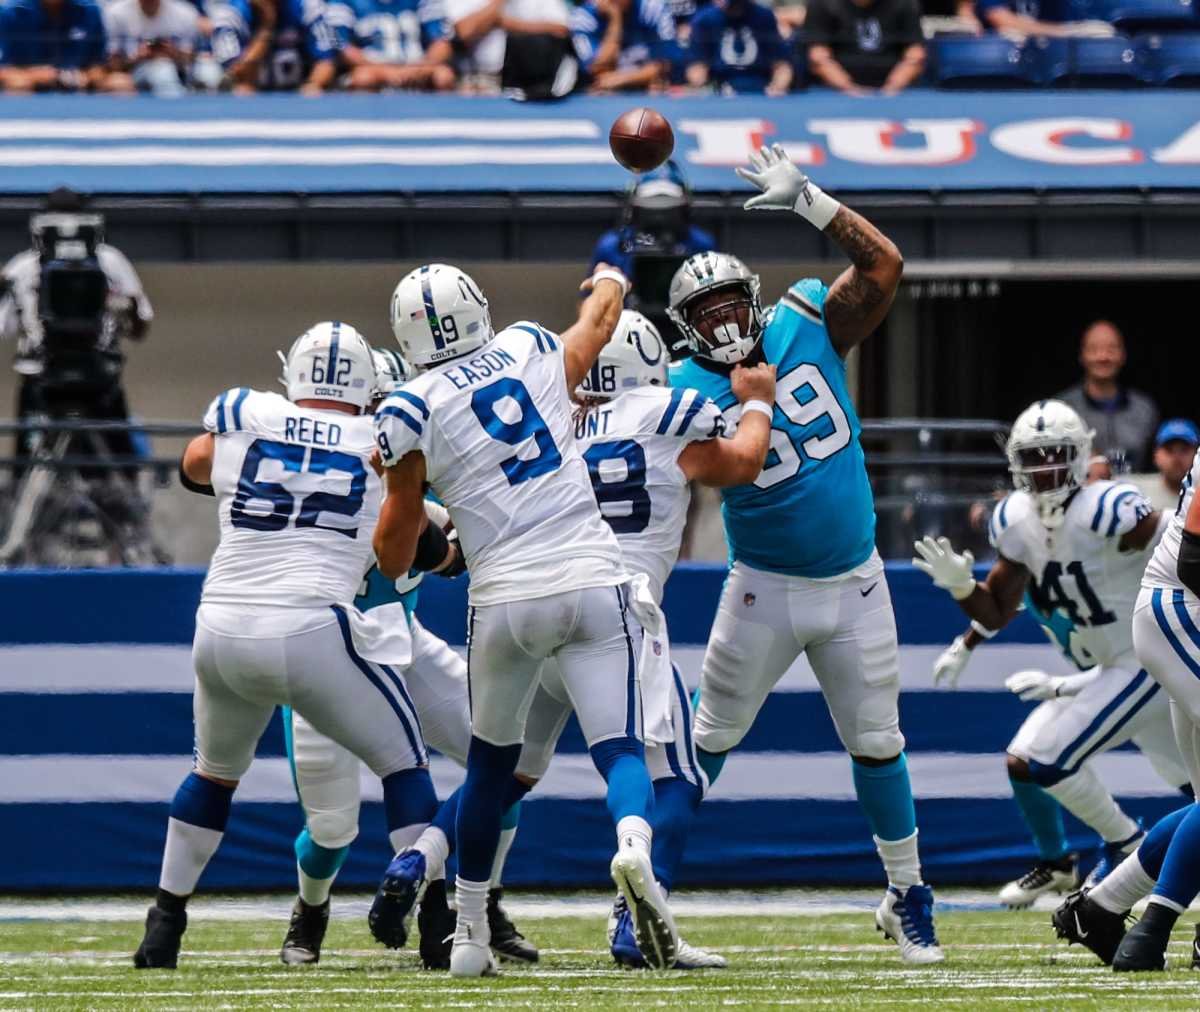 Indianapolis Colts quarterback Jacob Eason (9) throws the ball on Sunday, Aug. 15, 2021, during a pre-season game between the Indianapolis Colts and the Carolina Panthers at Lucas Oil Stadium in Indianapolis. Finals 14